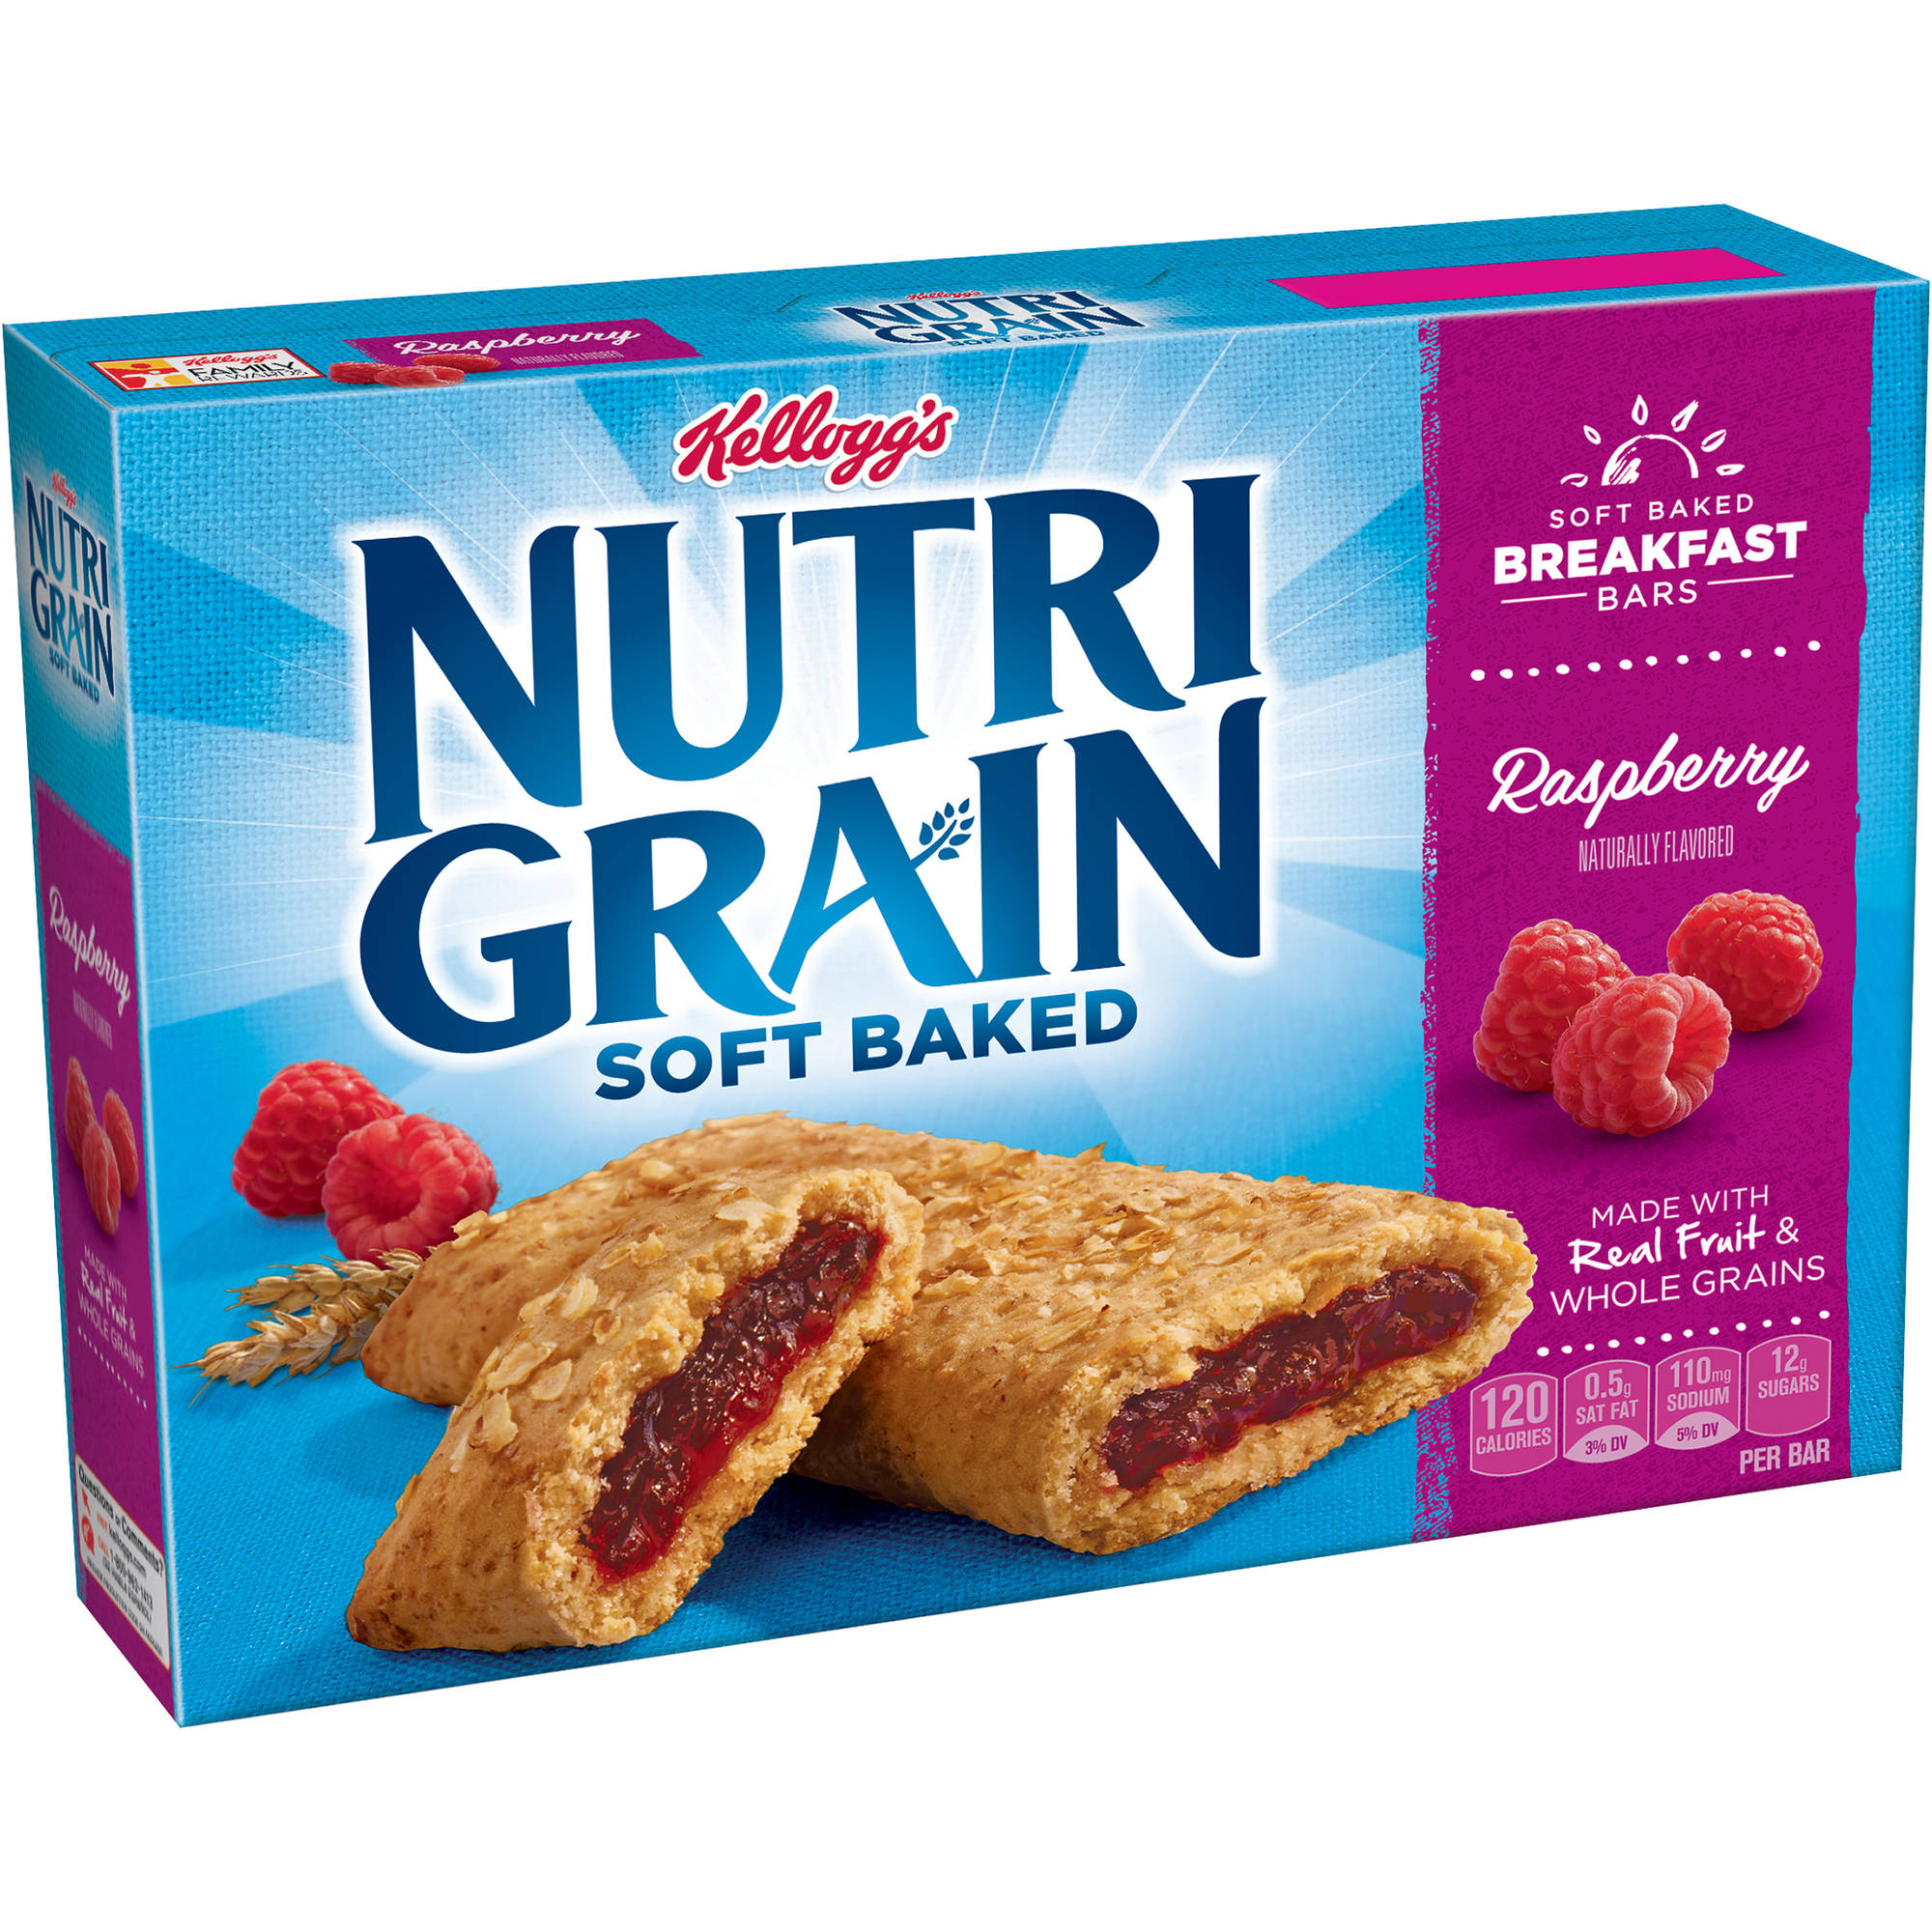 Kellogg's Nutri-Grain Soft Baked Raspberry Breakfast Bars, 1.3 oz, 8 count